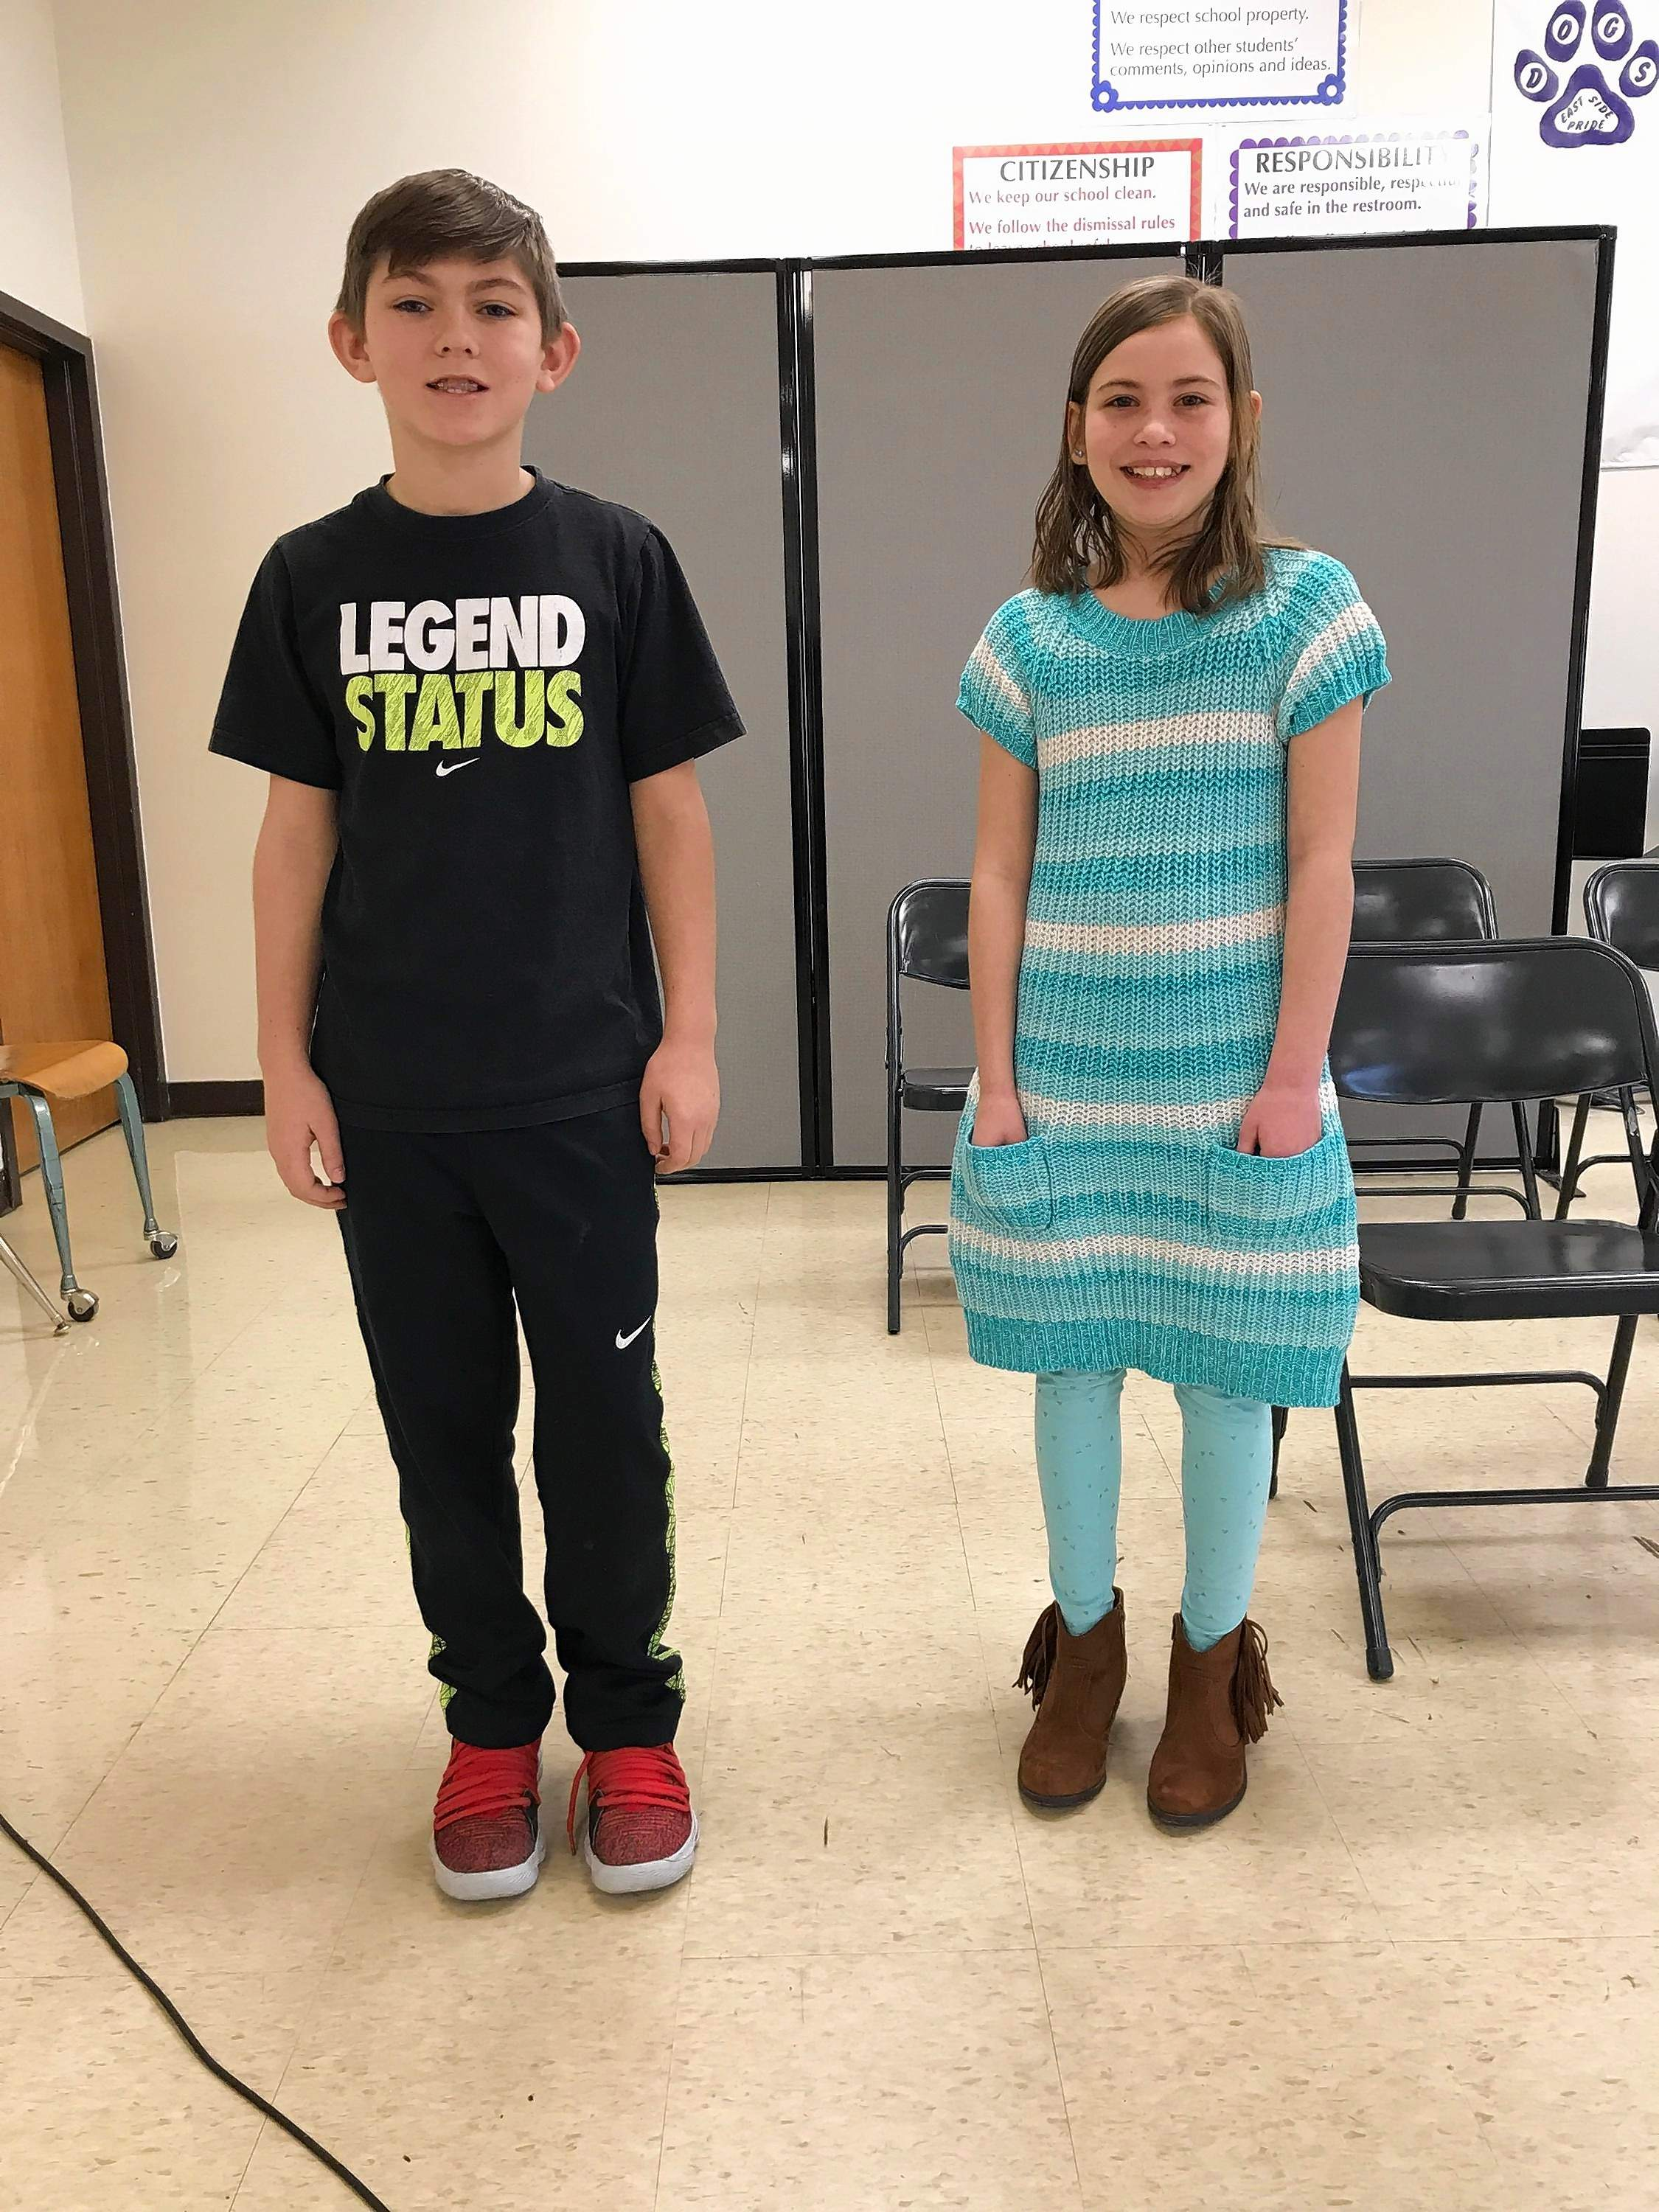 Fifth grade spelling bee winner Dalthan Case and runner-up Kaylee Vinson.